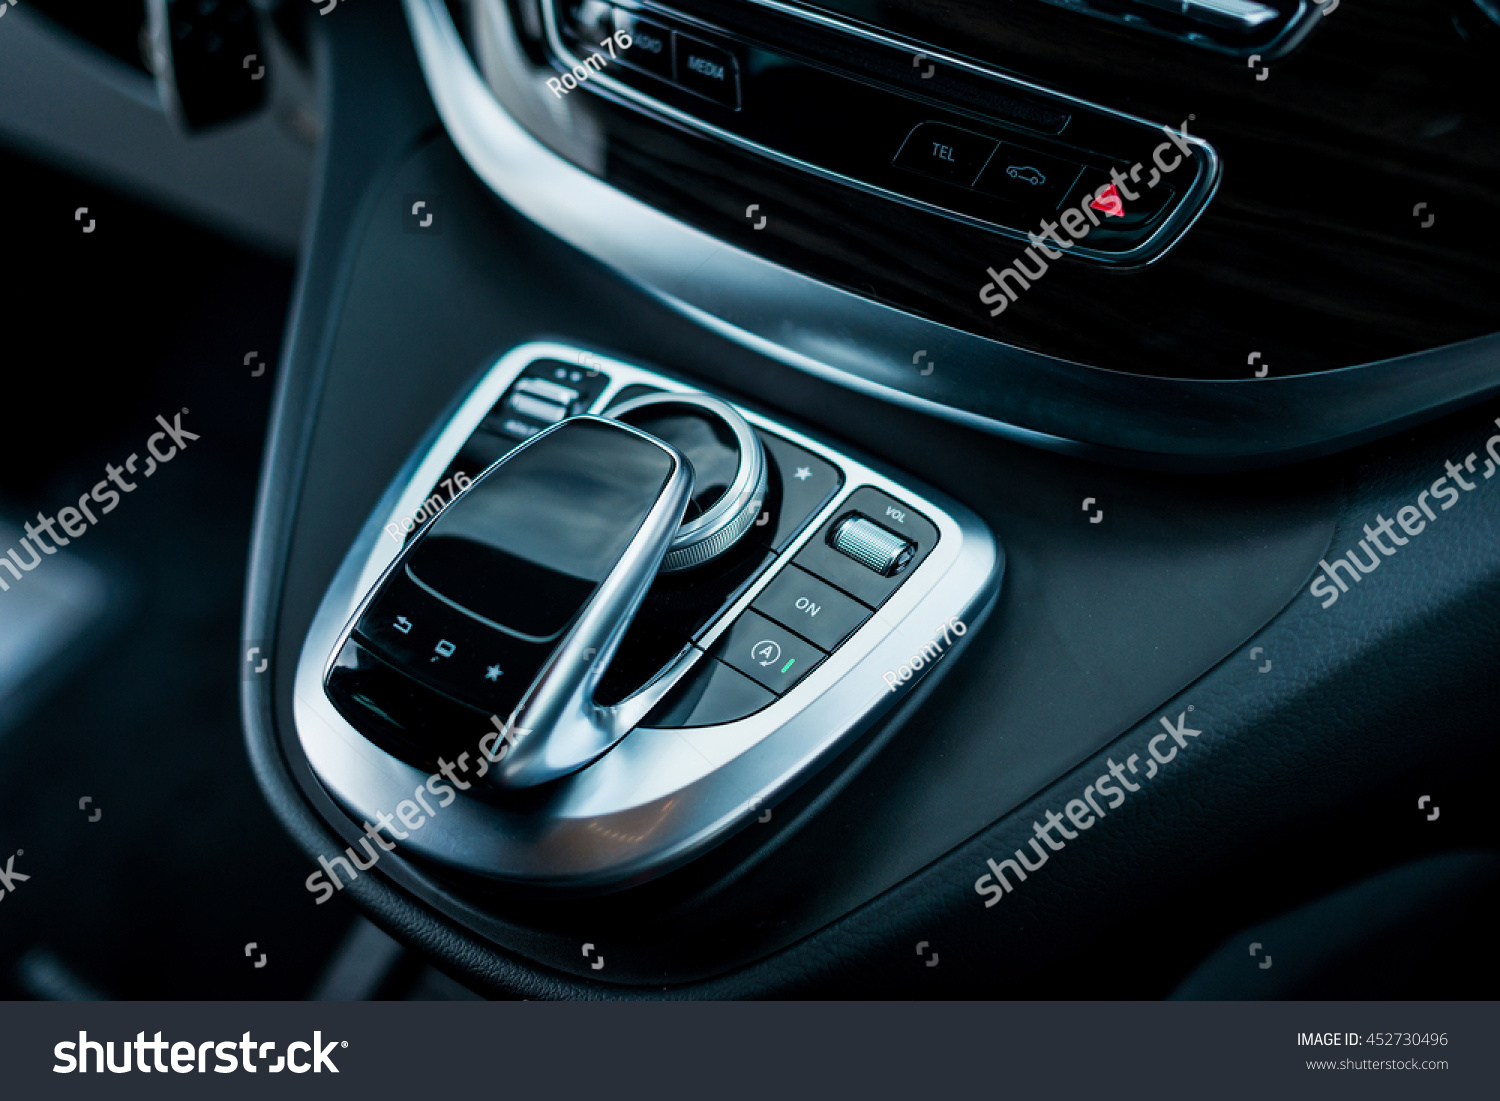 luxury car interior details middle console stock photo 452730496 shutterstock. Black Bedroom Furniture Sets. Home Design Ideas